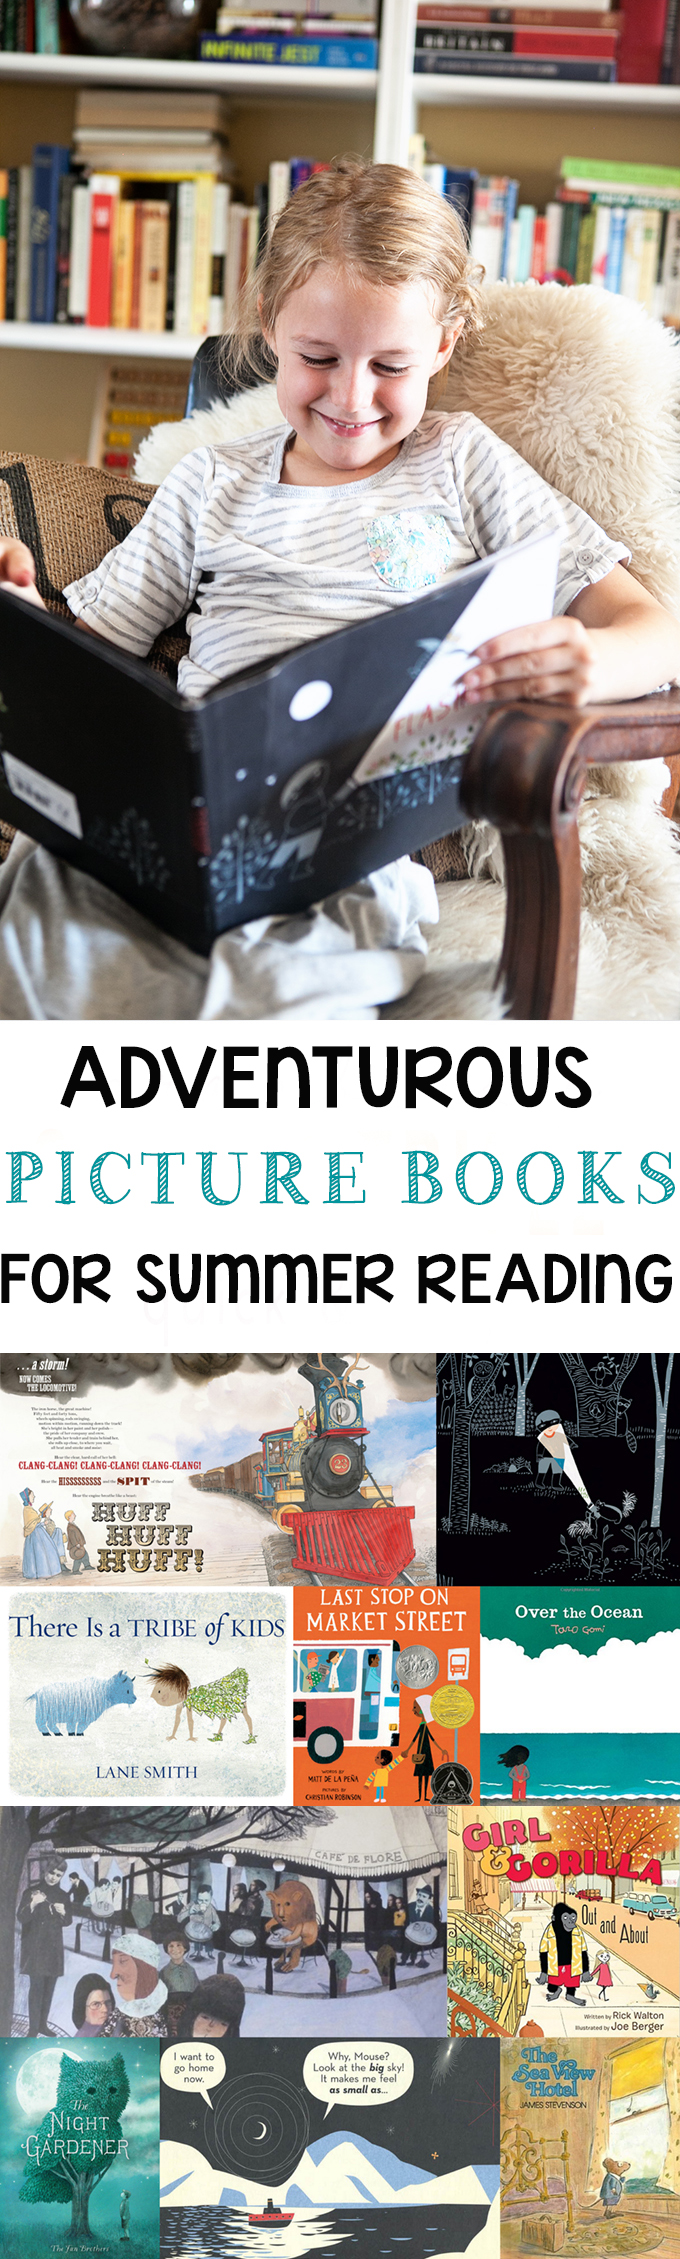 50 Picture Books for Summer Adventures: A Picture Book List of Adventure Books and Stories for some good arm chair travel. Great Picture Books for Kids!